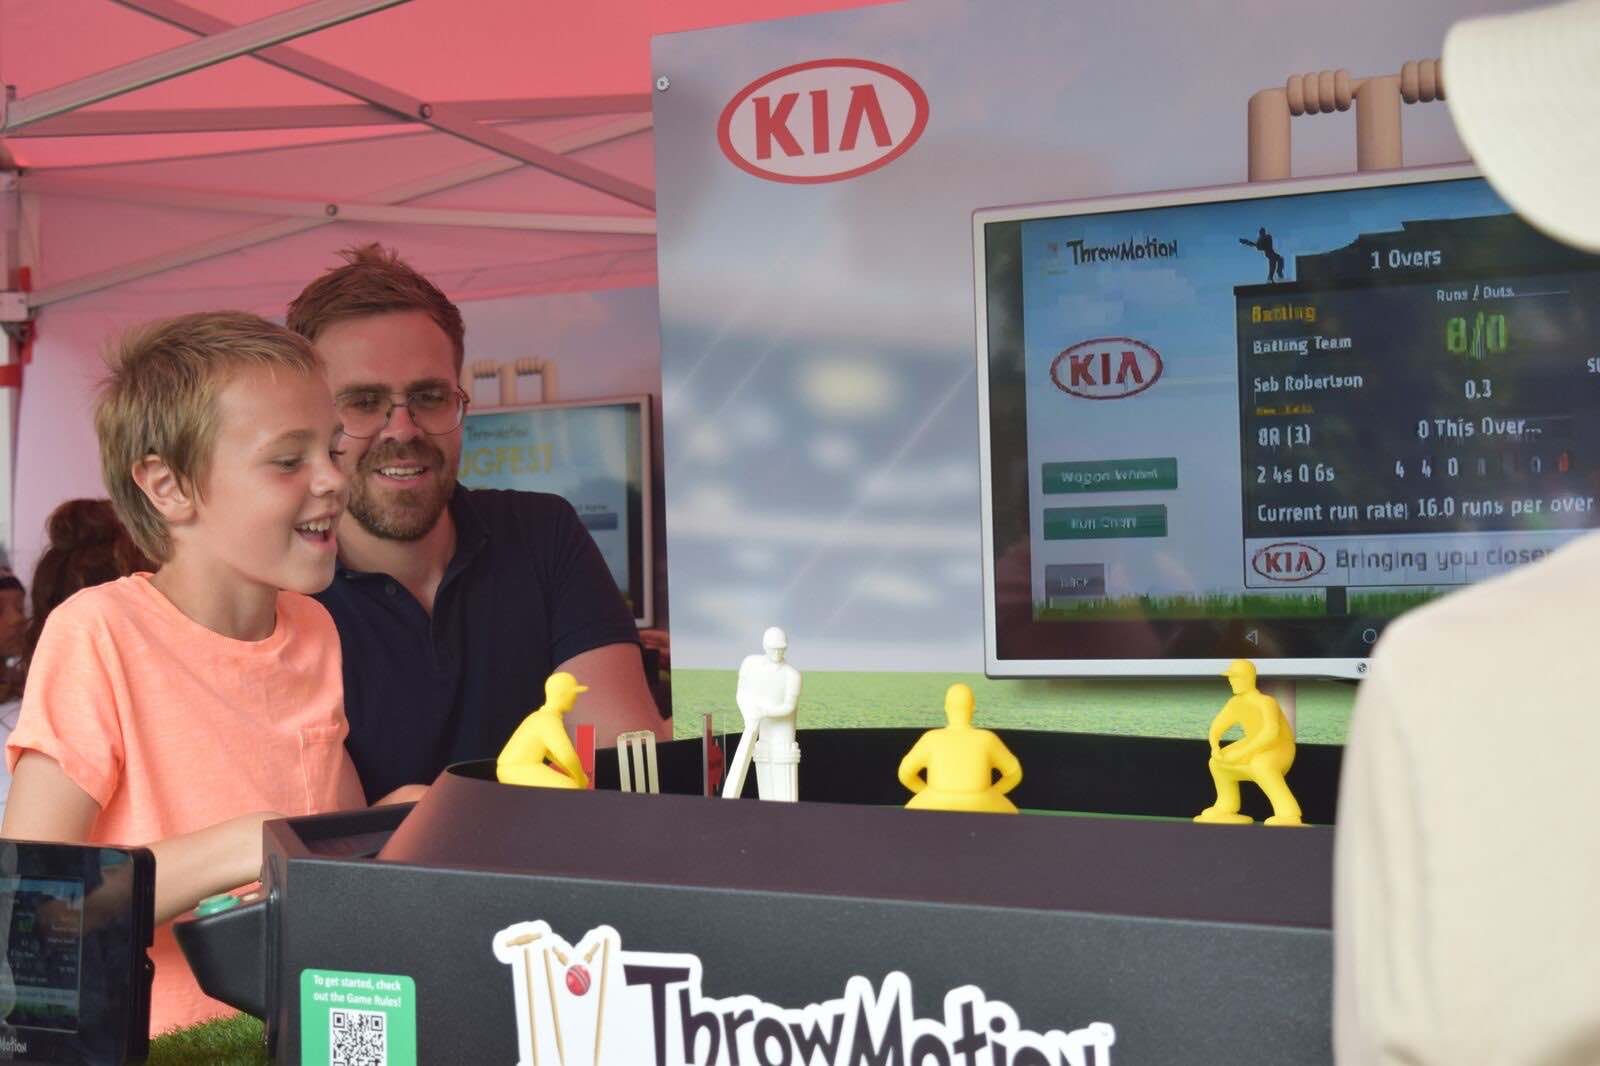 CricketLive! father and son play cricket game at kia oval throwmotion